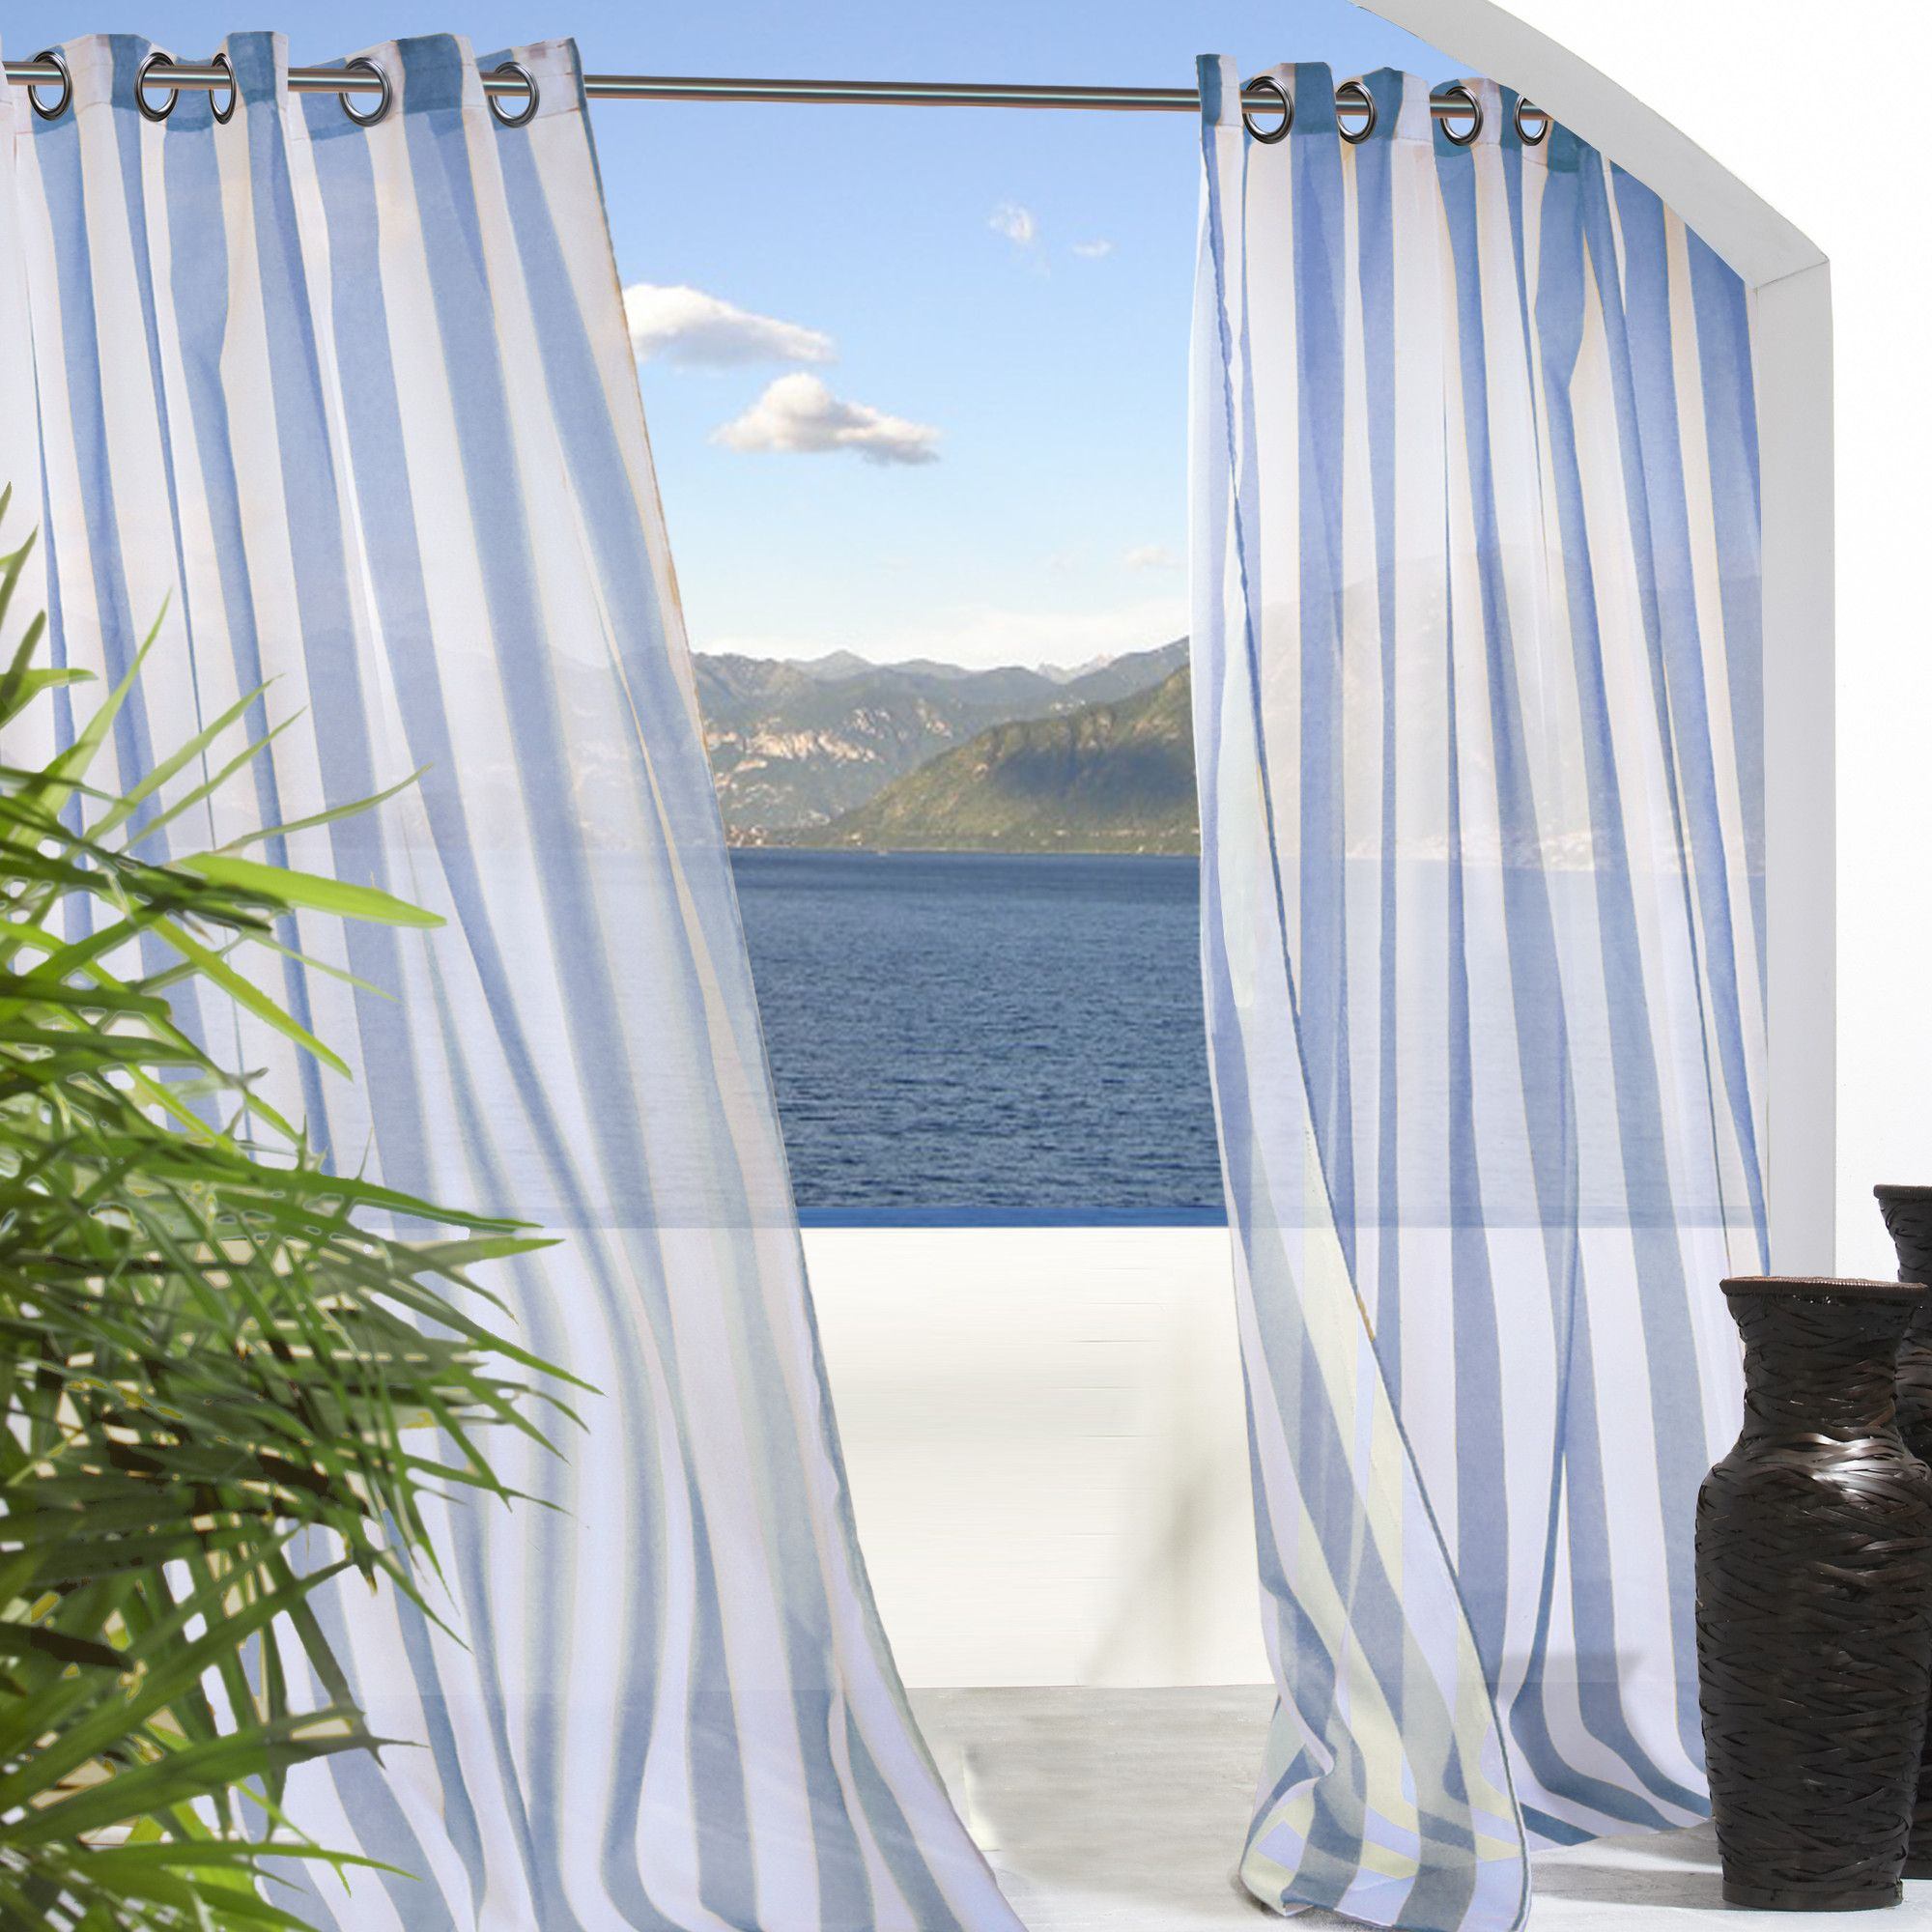 Commonwealth Home Fashions Outdoor Décor Escape Outdoor Stripe Grommet Top Curtain Panel & Reviews | Wayfair $24.99